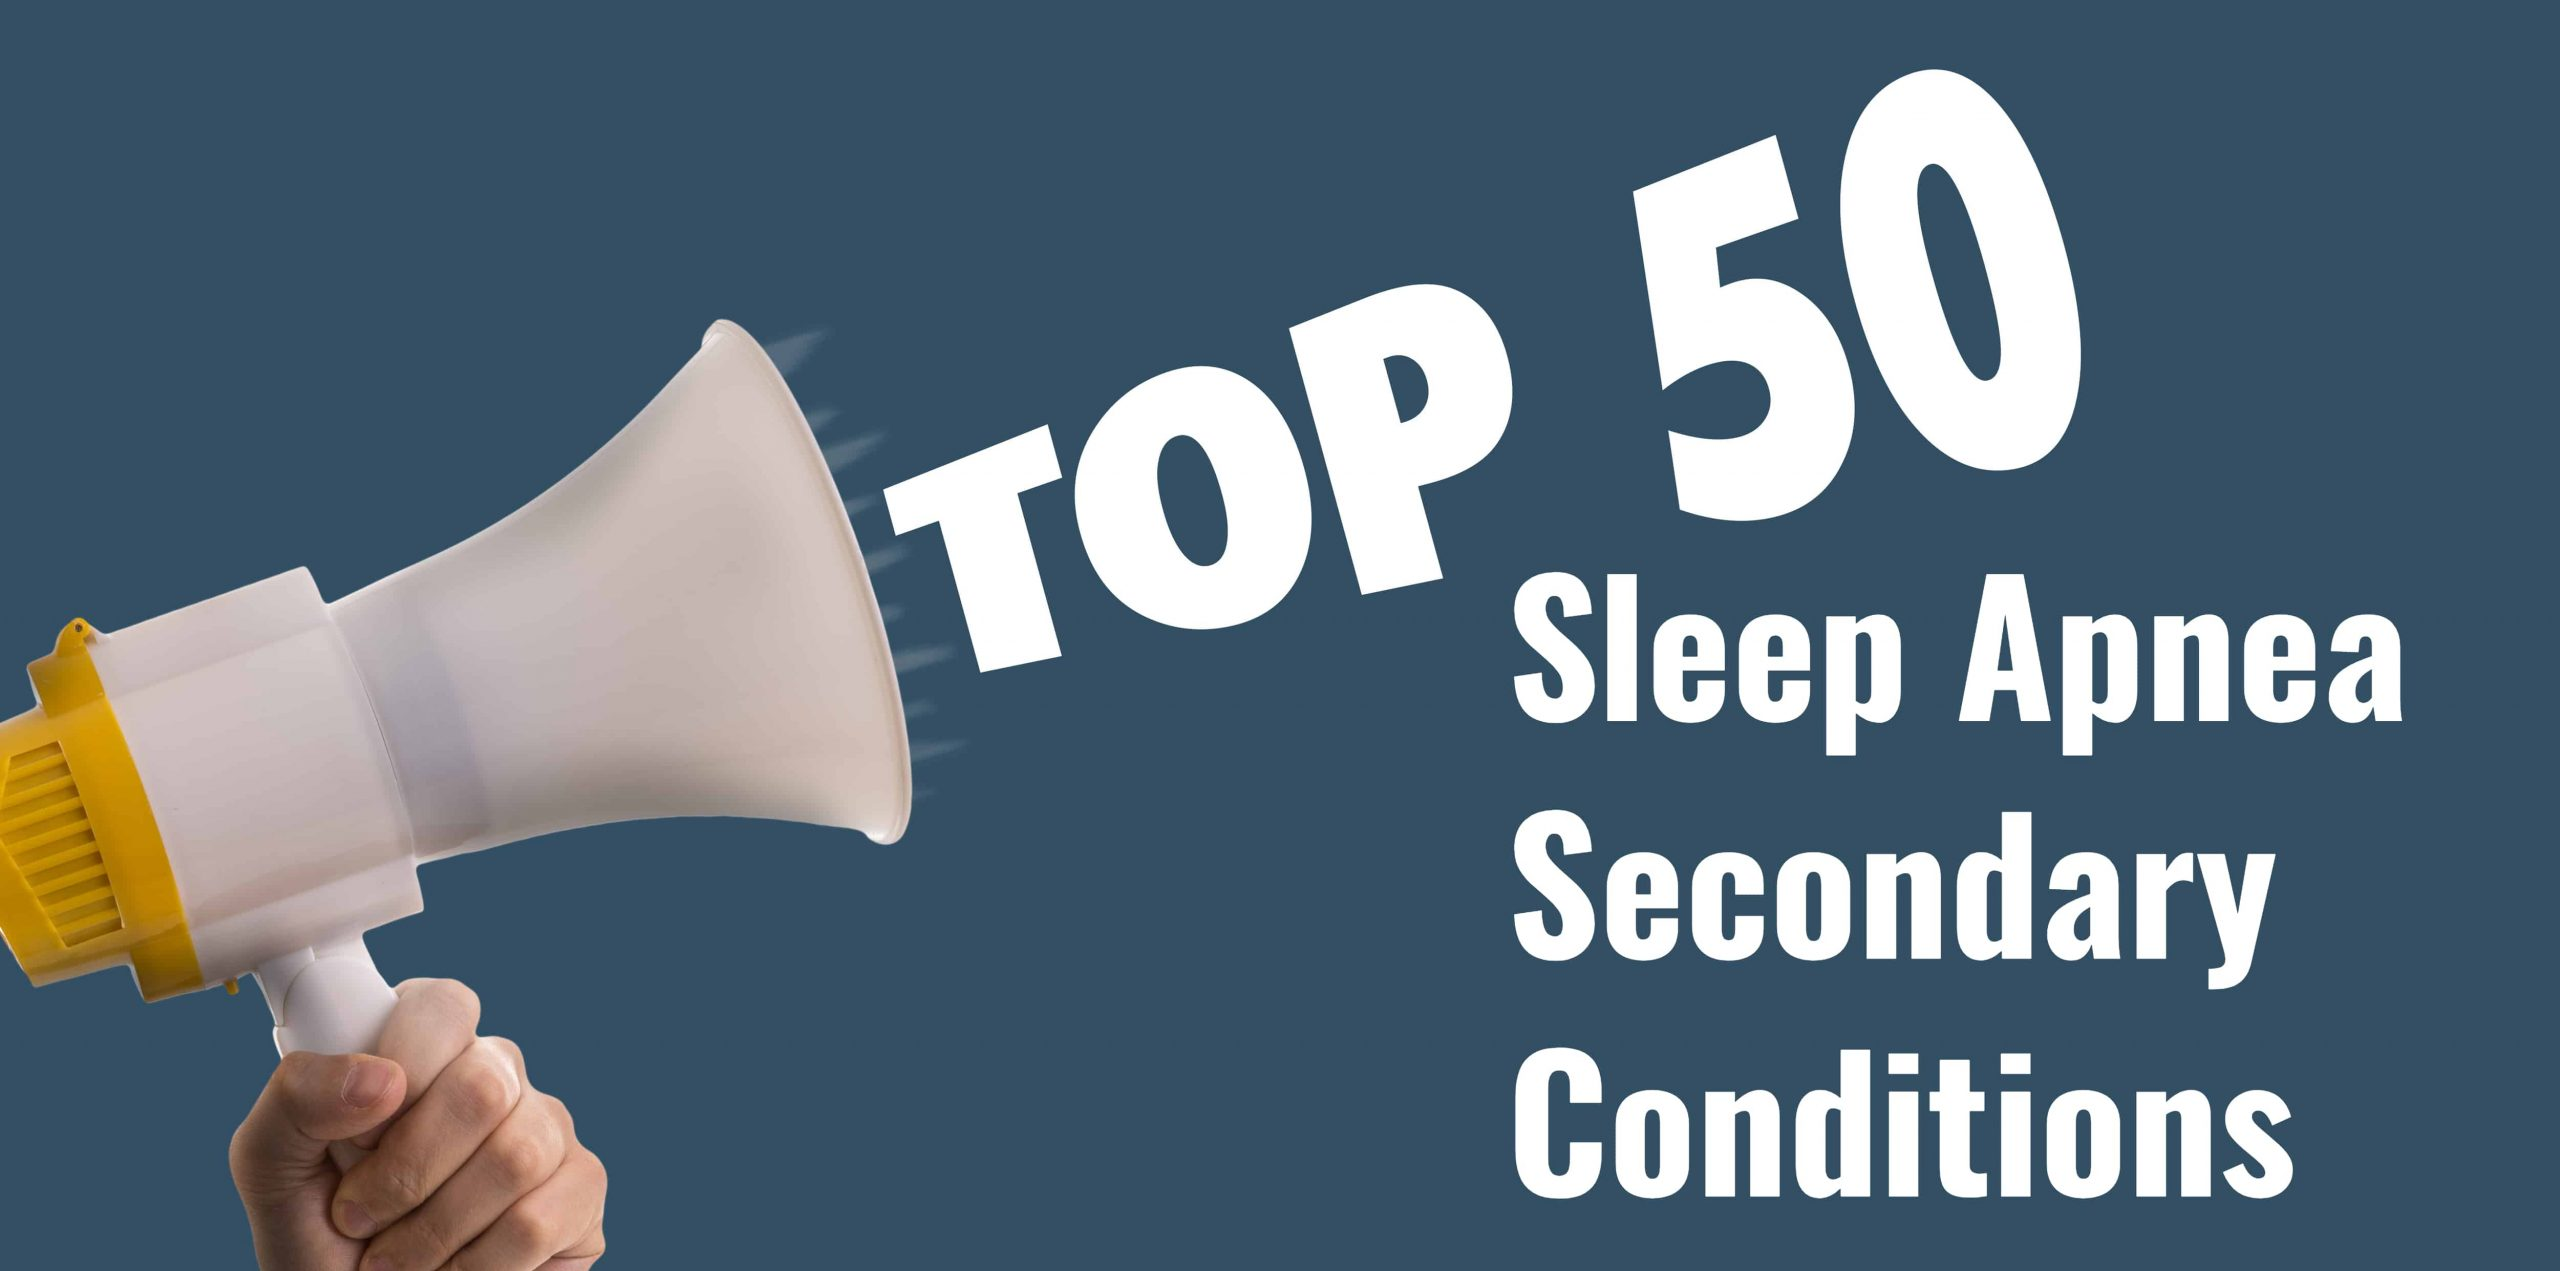 List of 50+ Sleep Apnea Secondary Conditions